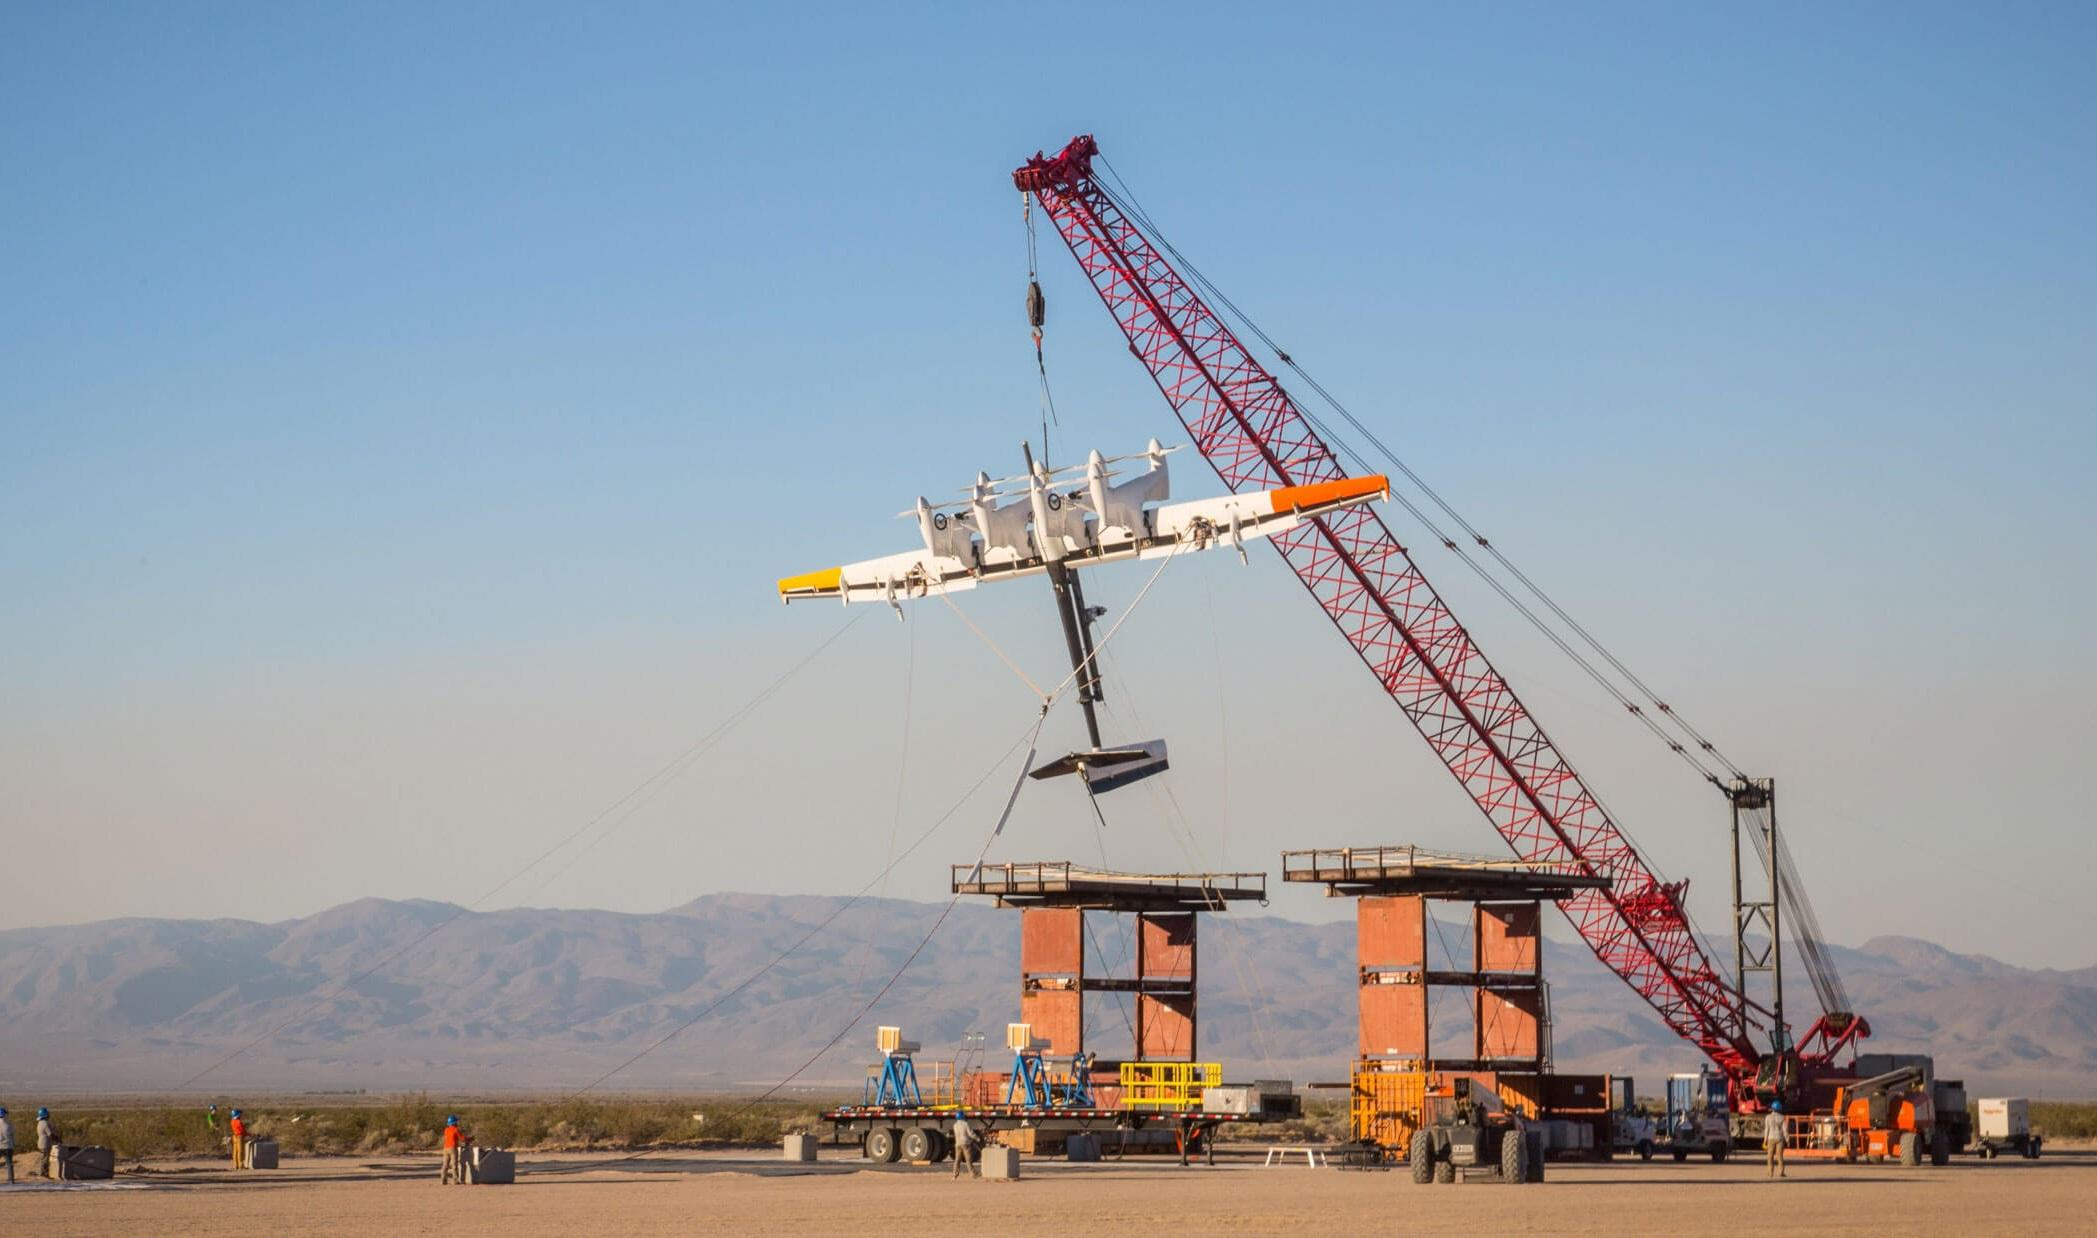 Secret Google kite project on verge of launching | The Independent